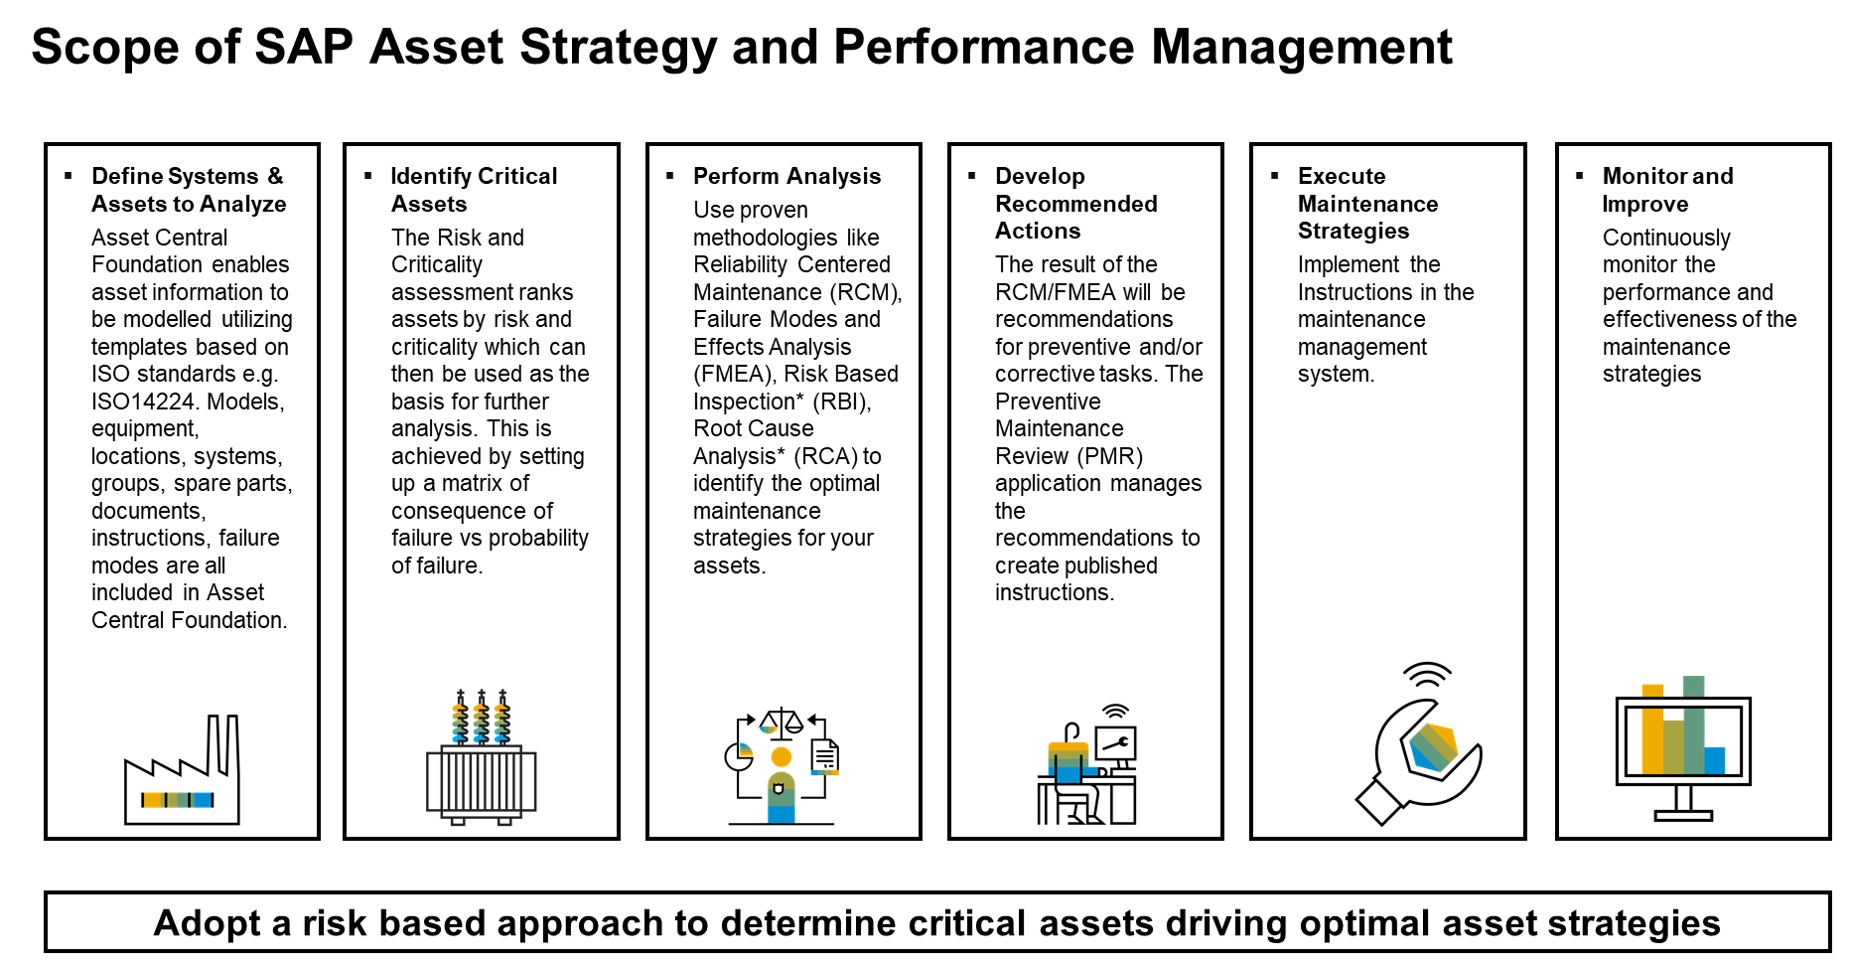 Sap Asset Strategy And Performance Management What S New In The